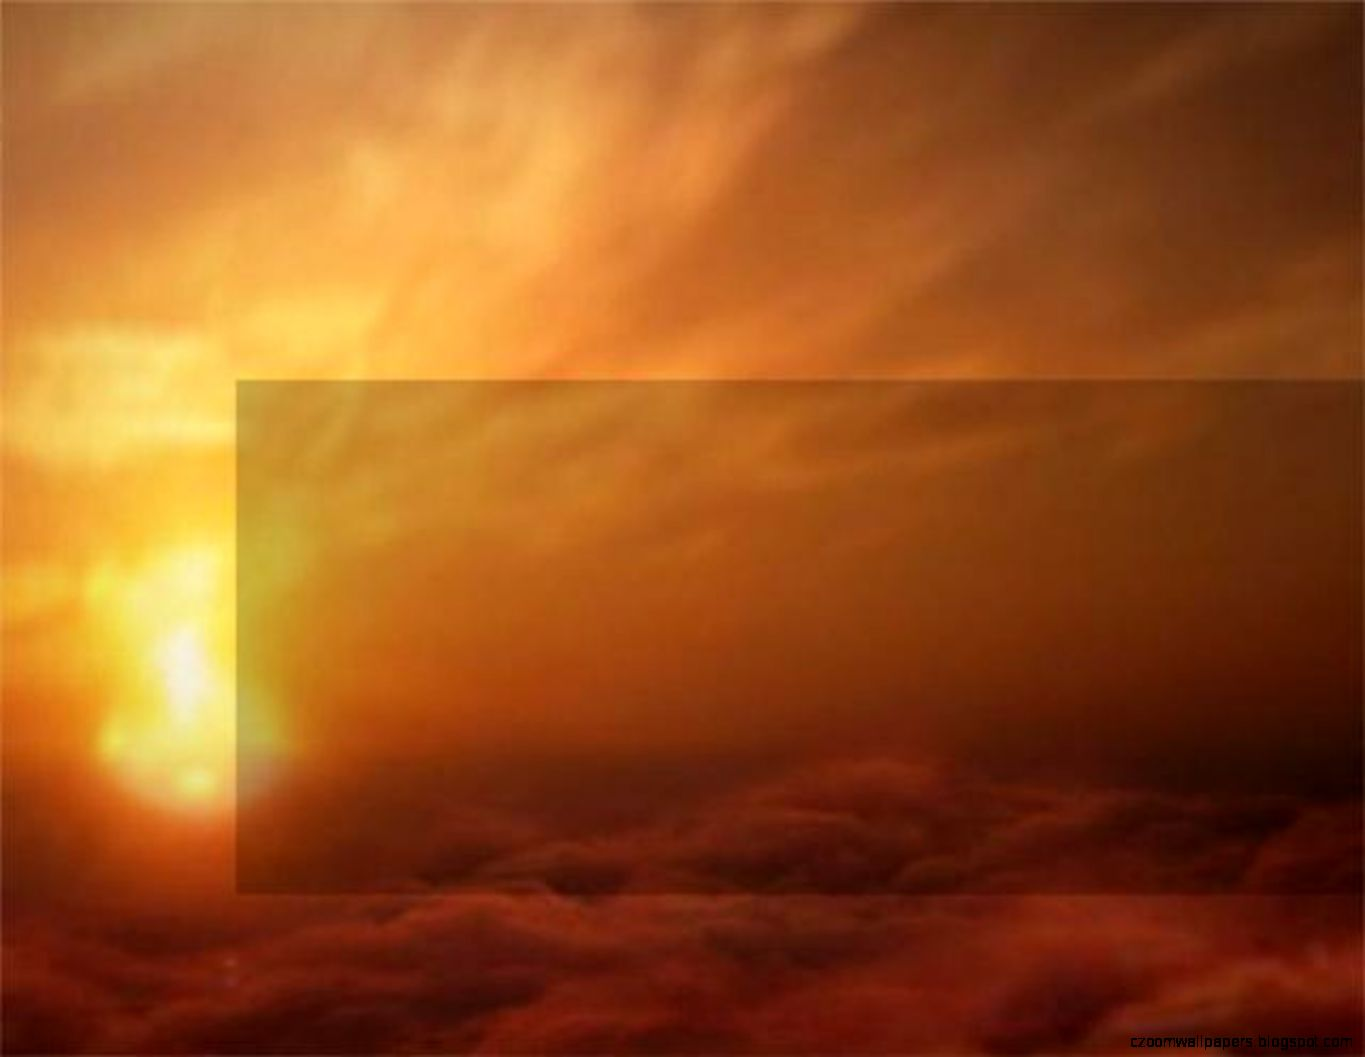 sunset powerpoint background | zoom wallpapers, Powerpoint templates